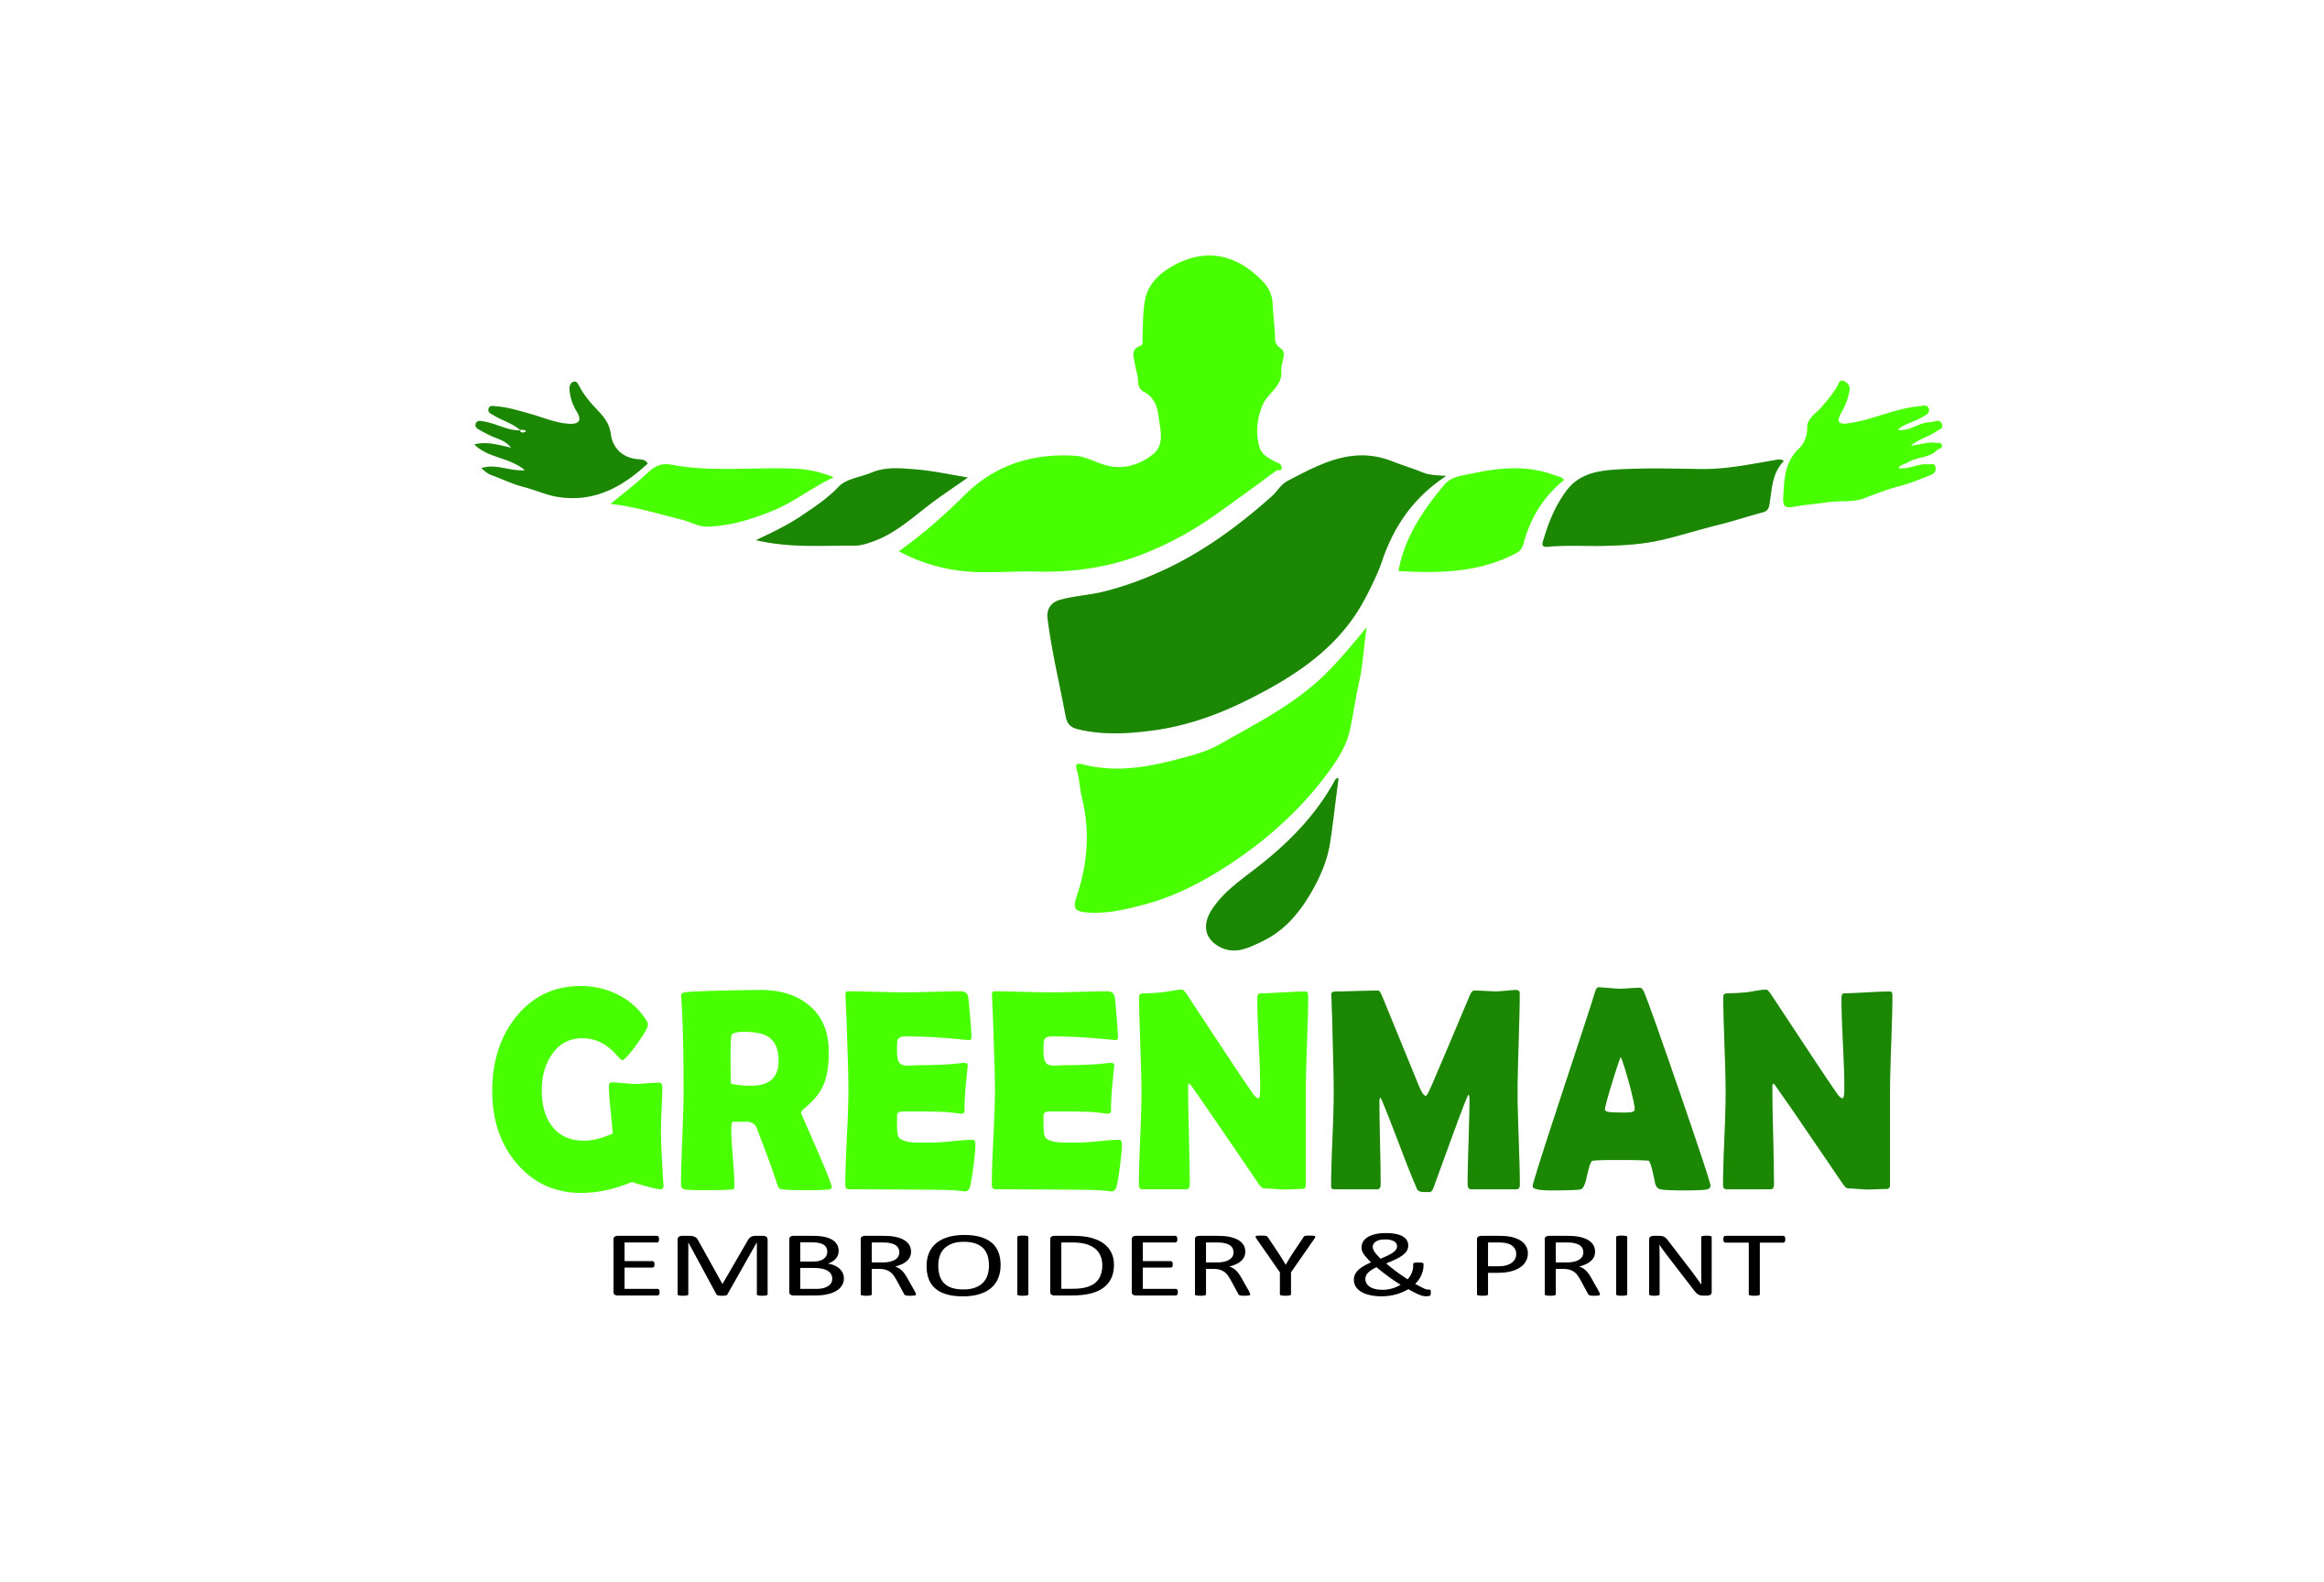 Greenman Embroidery & Print